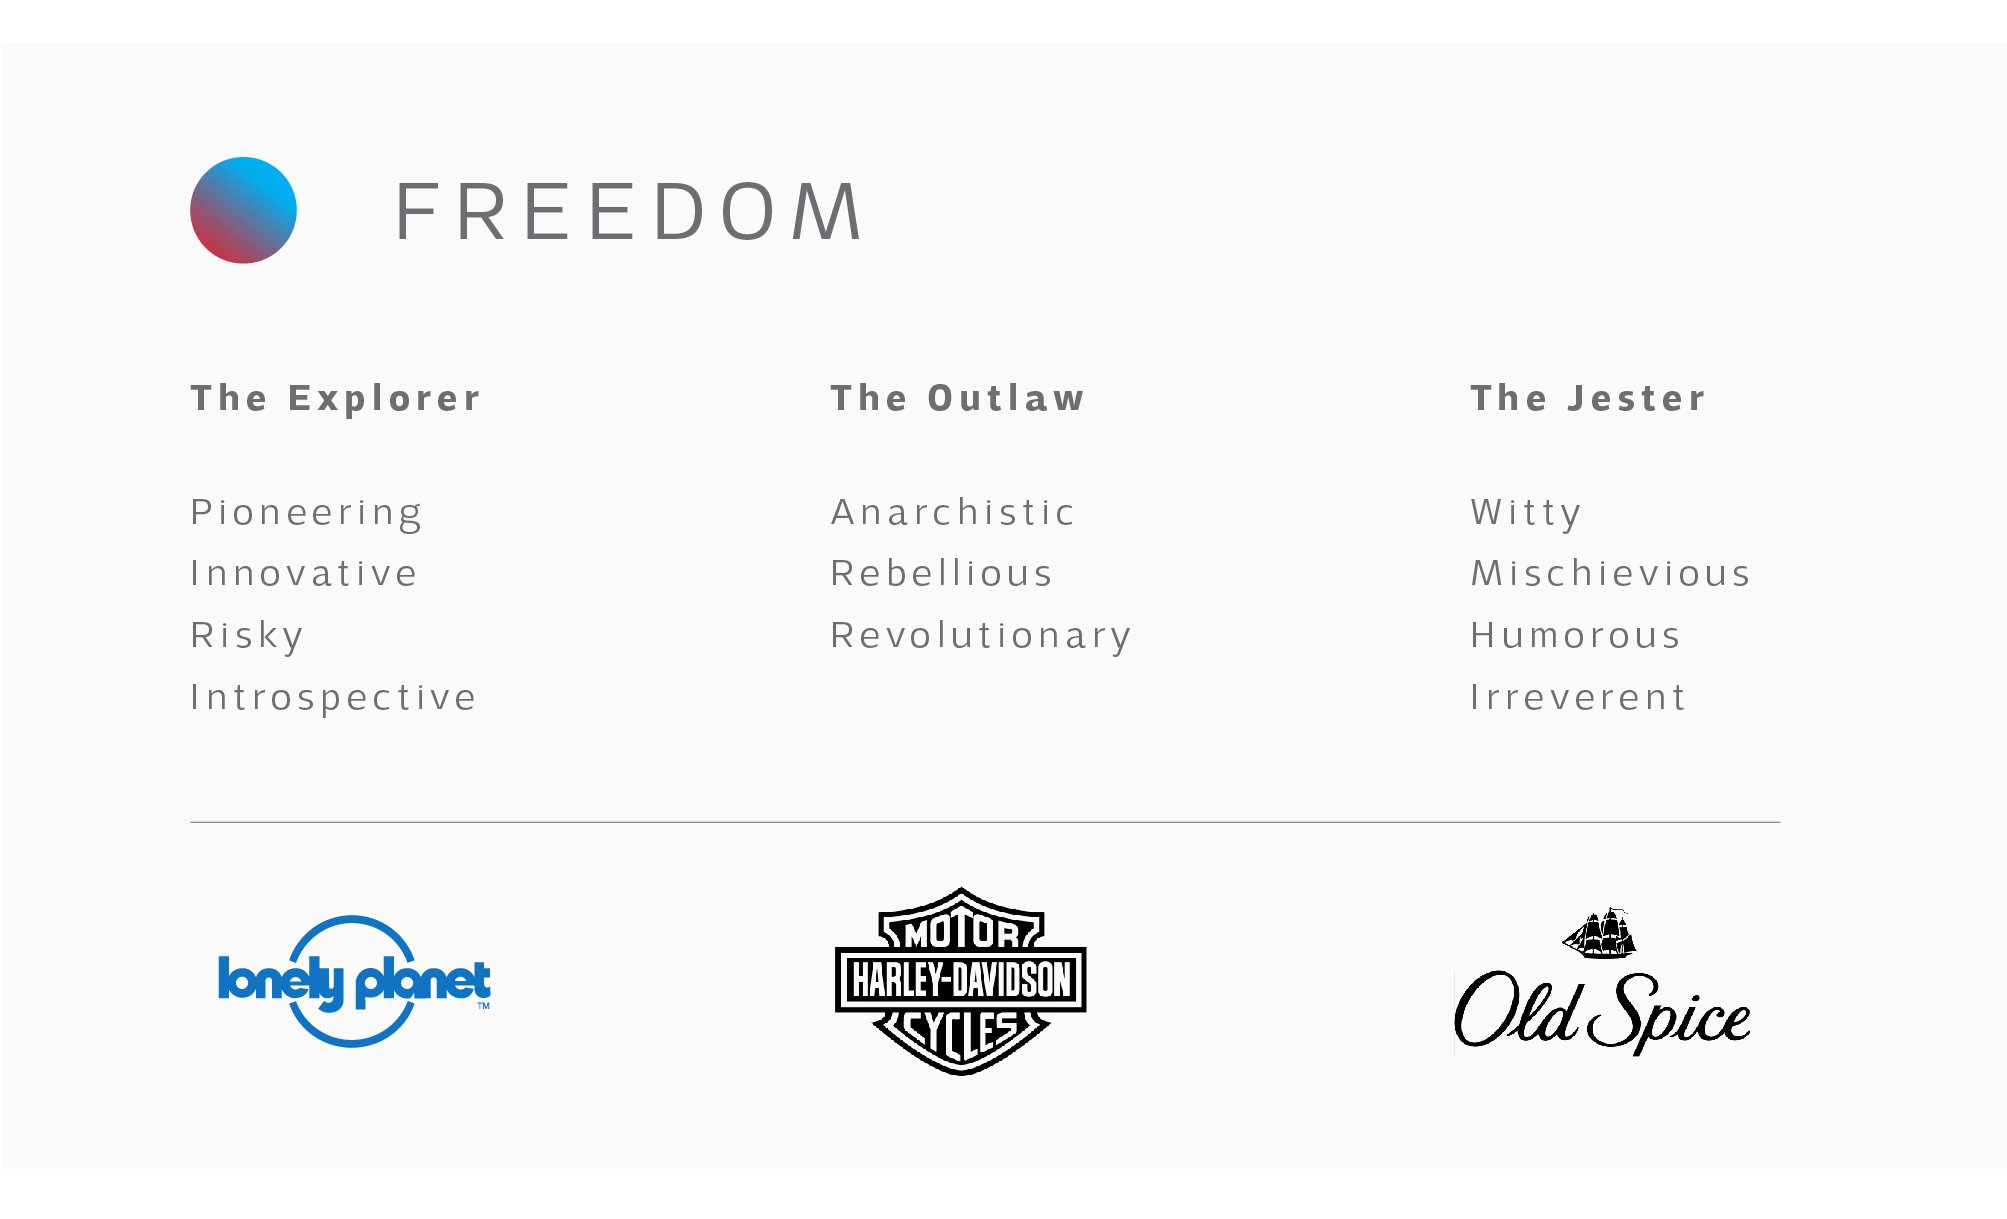 freedom, brand, personality, types, explorer, outlaw, jester